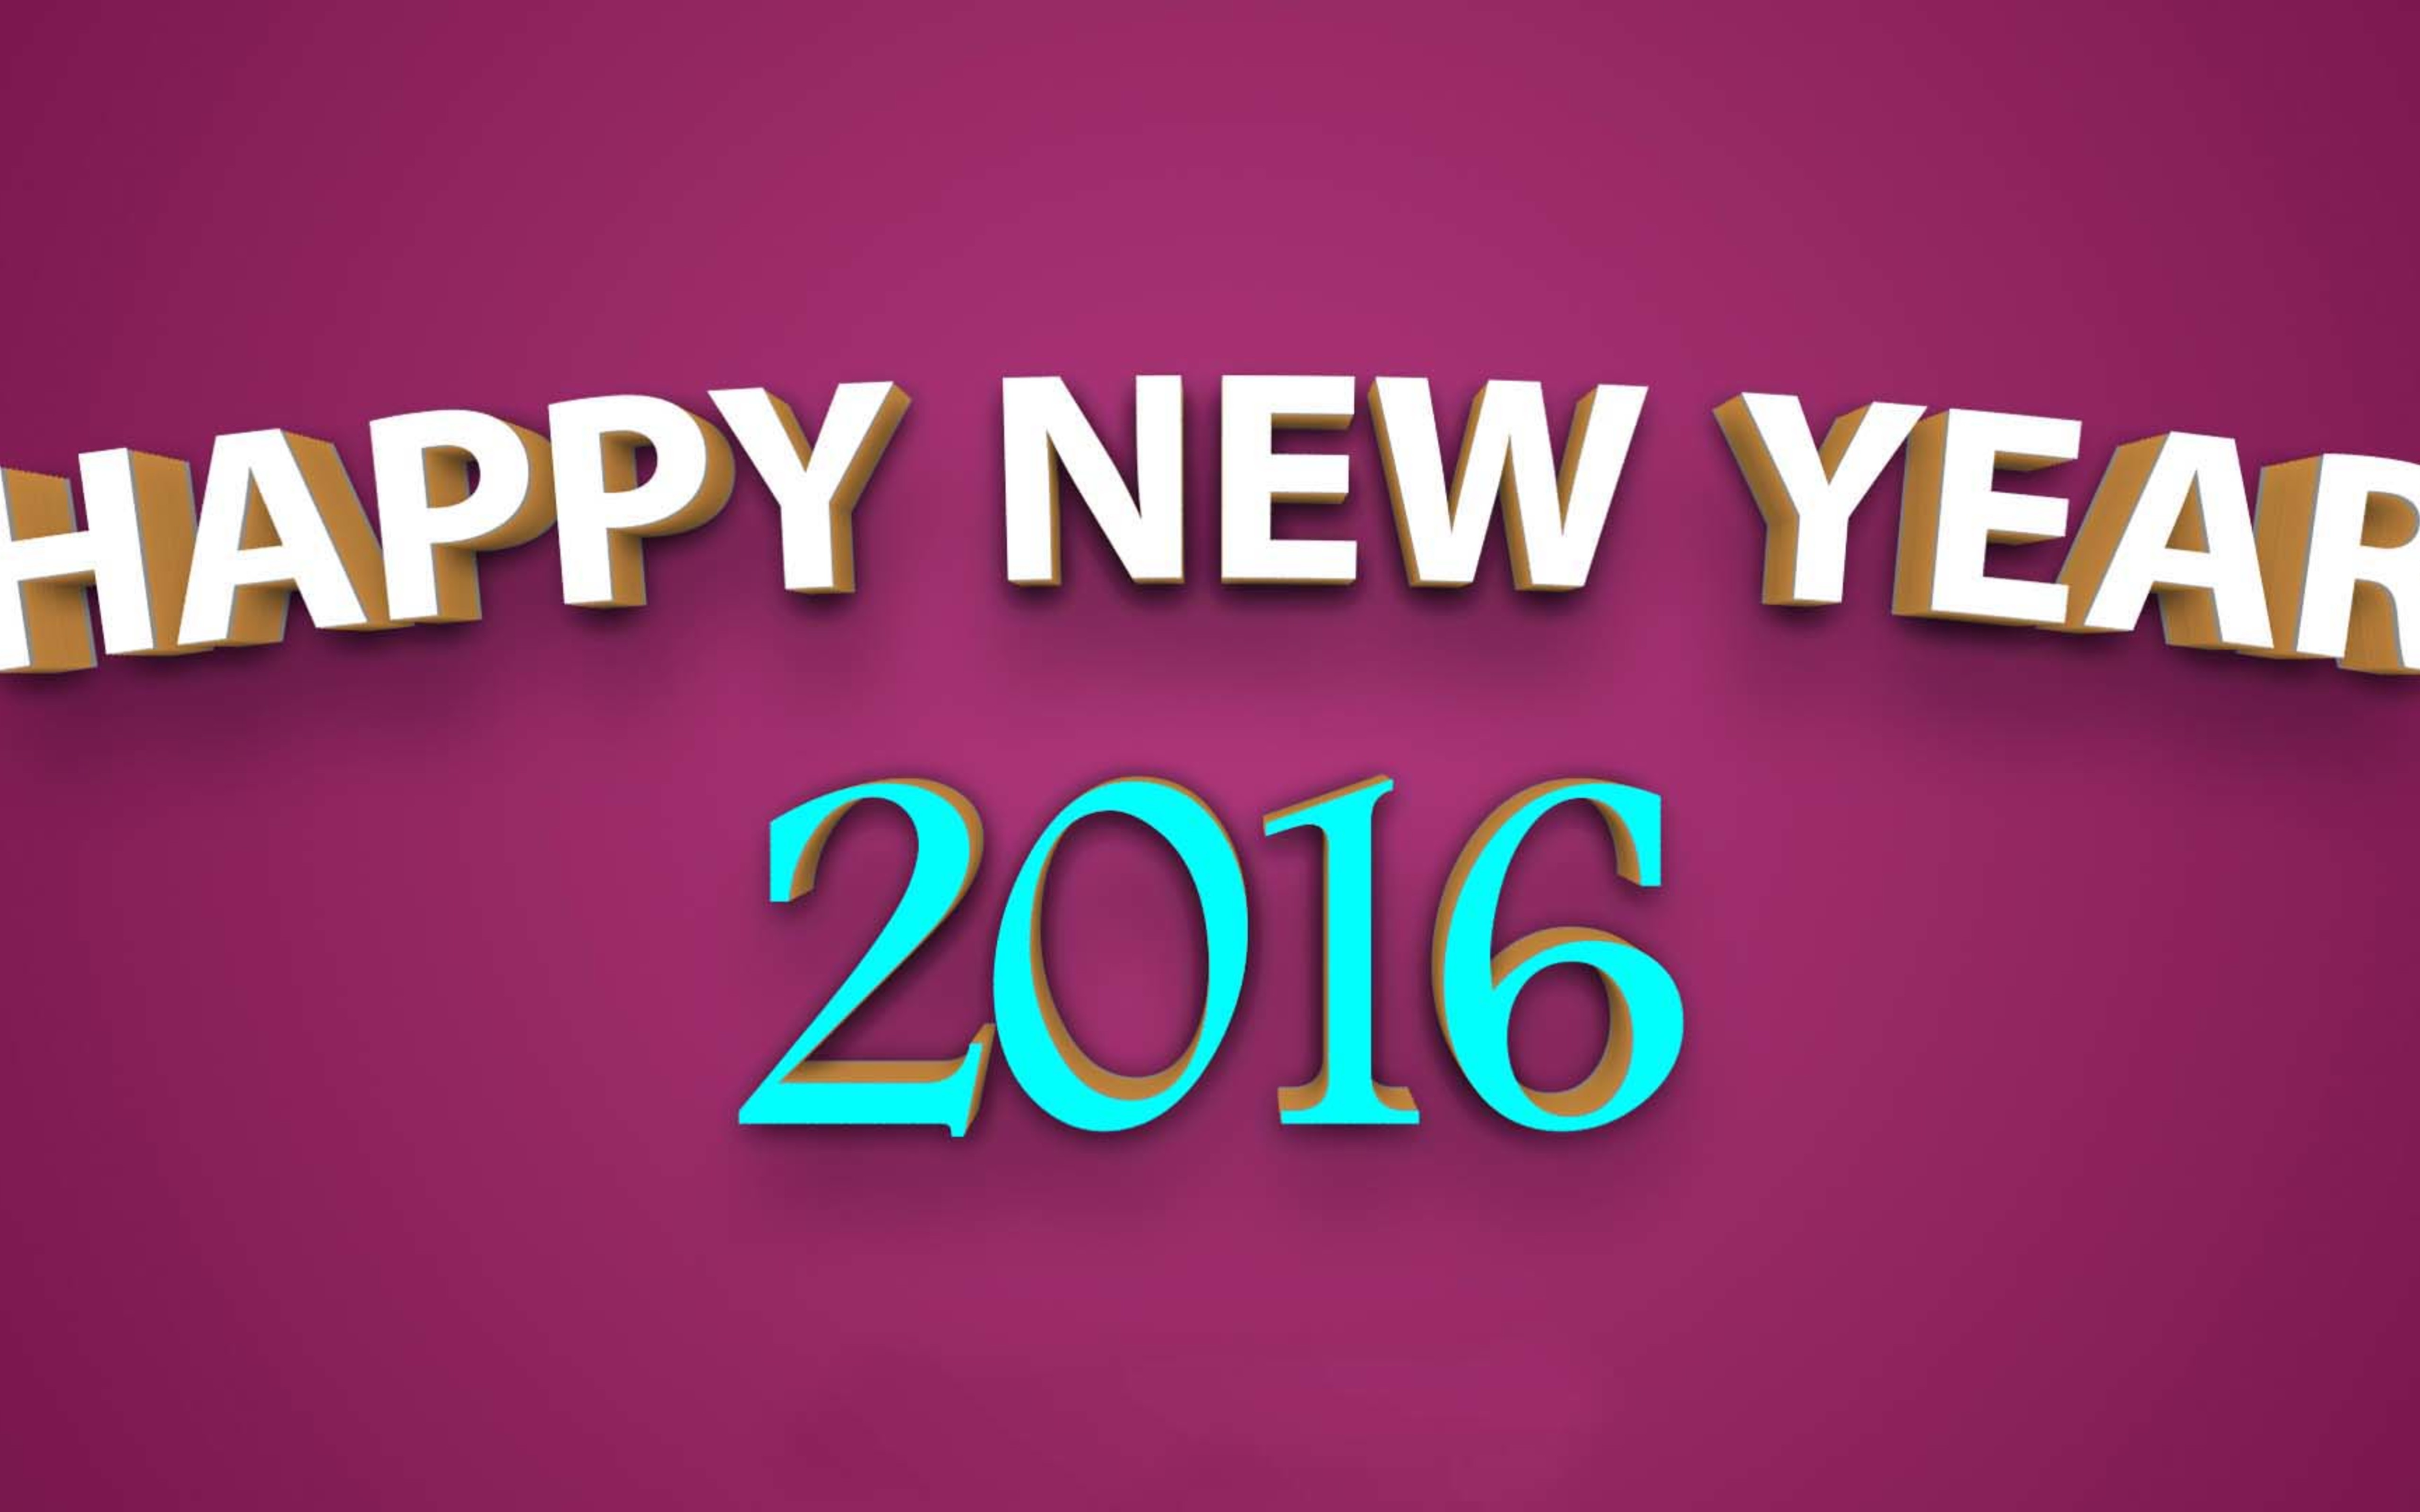 Free download Simple wallpaper Happy New Year 2016 [5120x3200] for